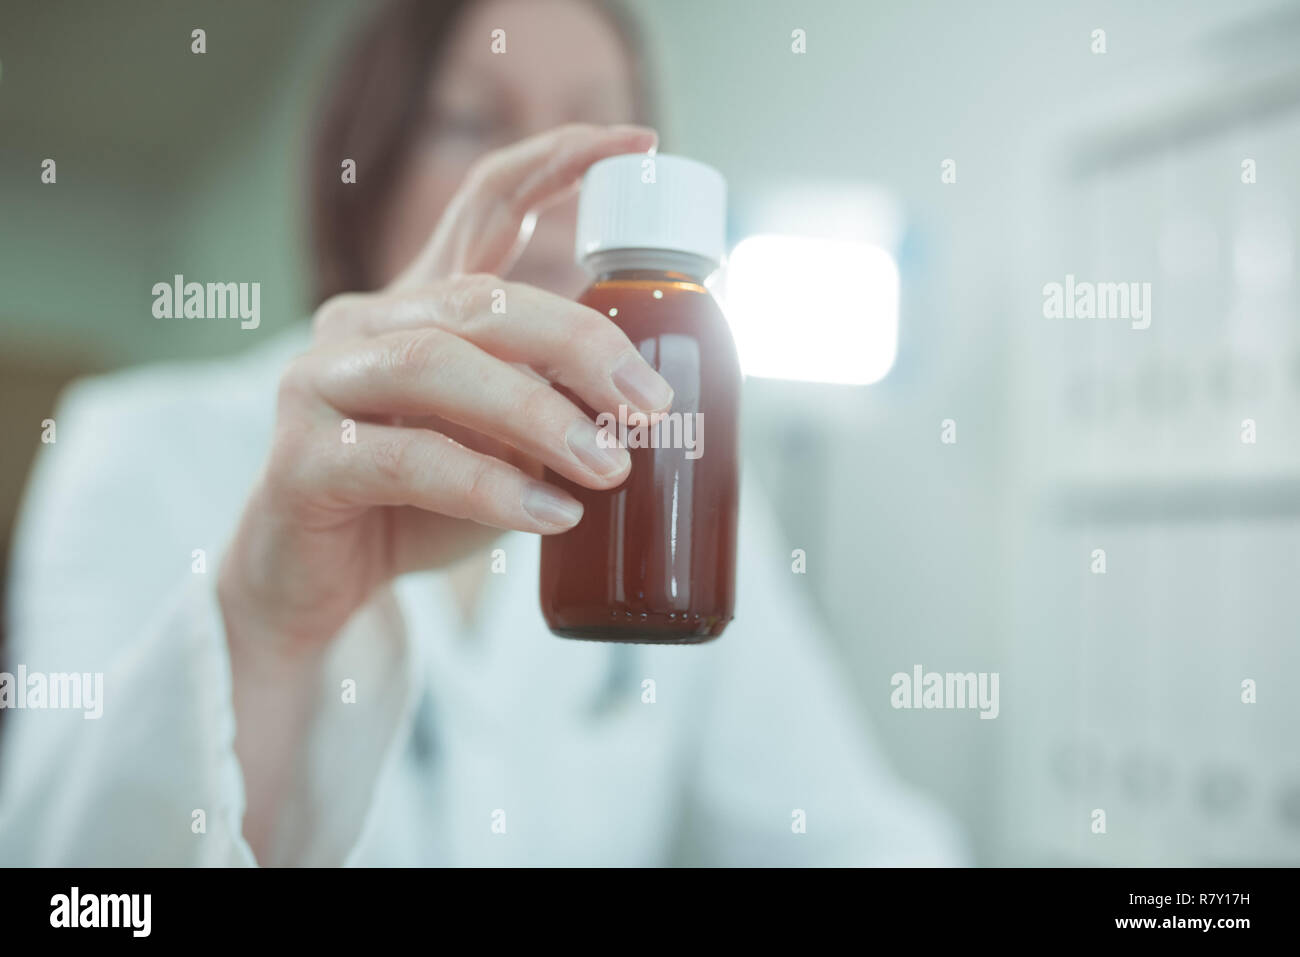 Pediatrician recommends paracetamol syrup for medical treatment of baby patients in pediatrics medical office, selective focus - Stock Image